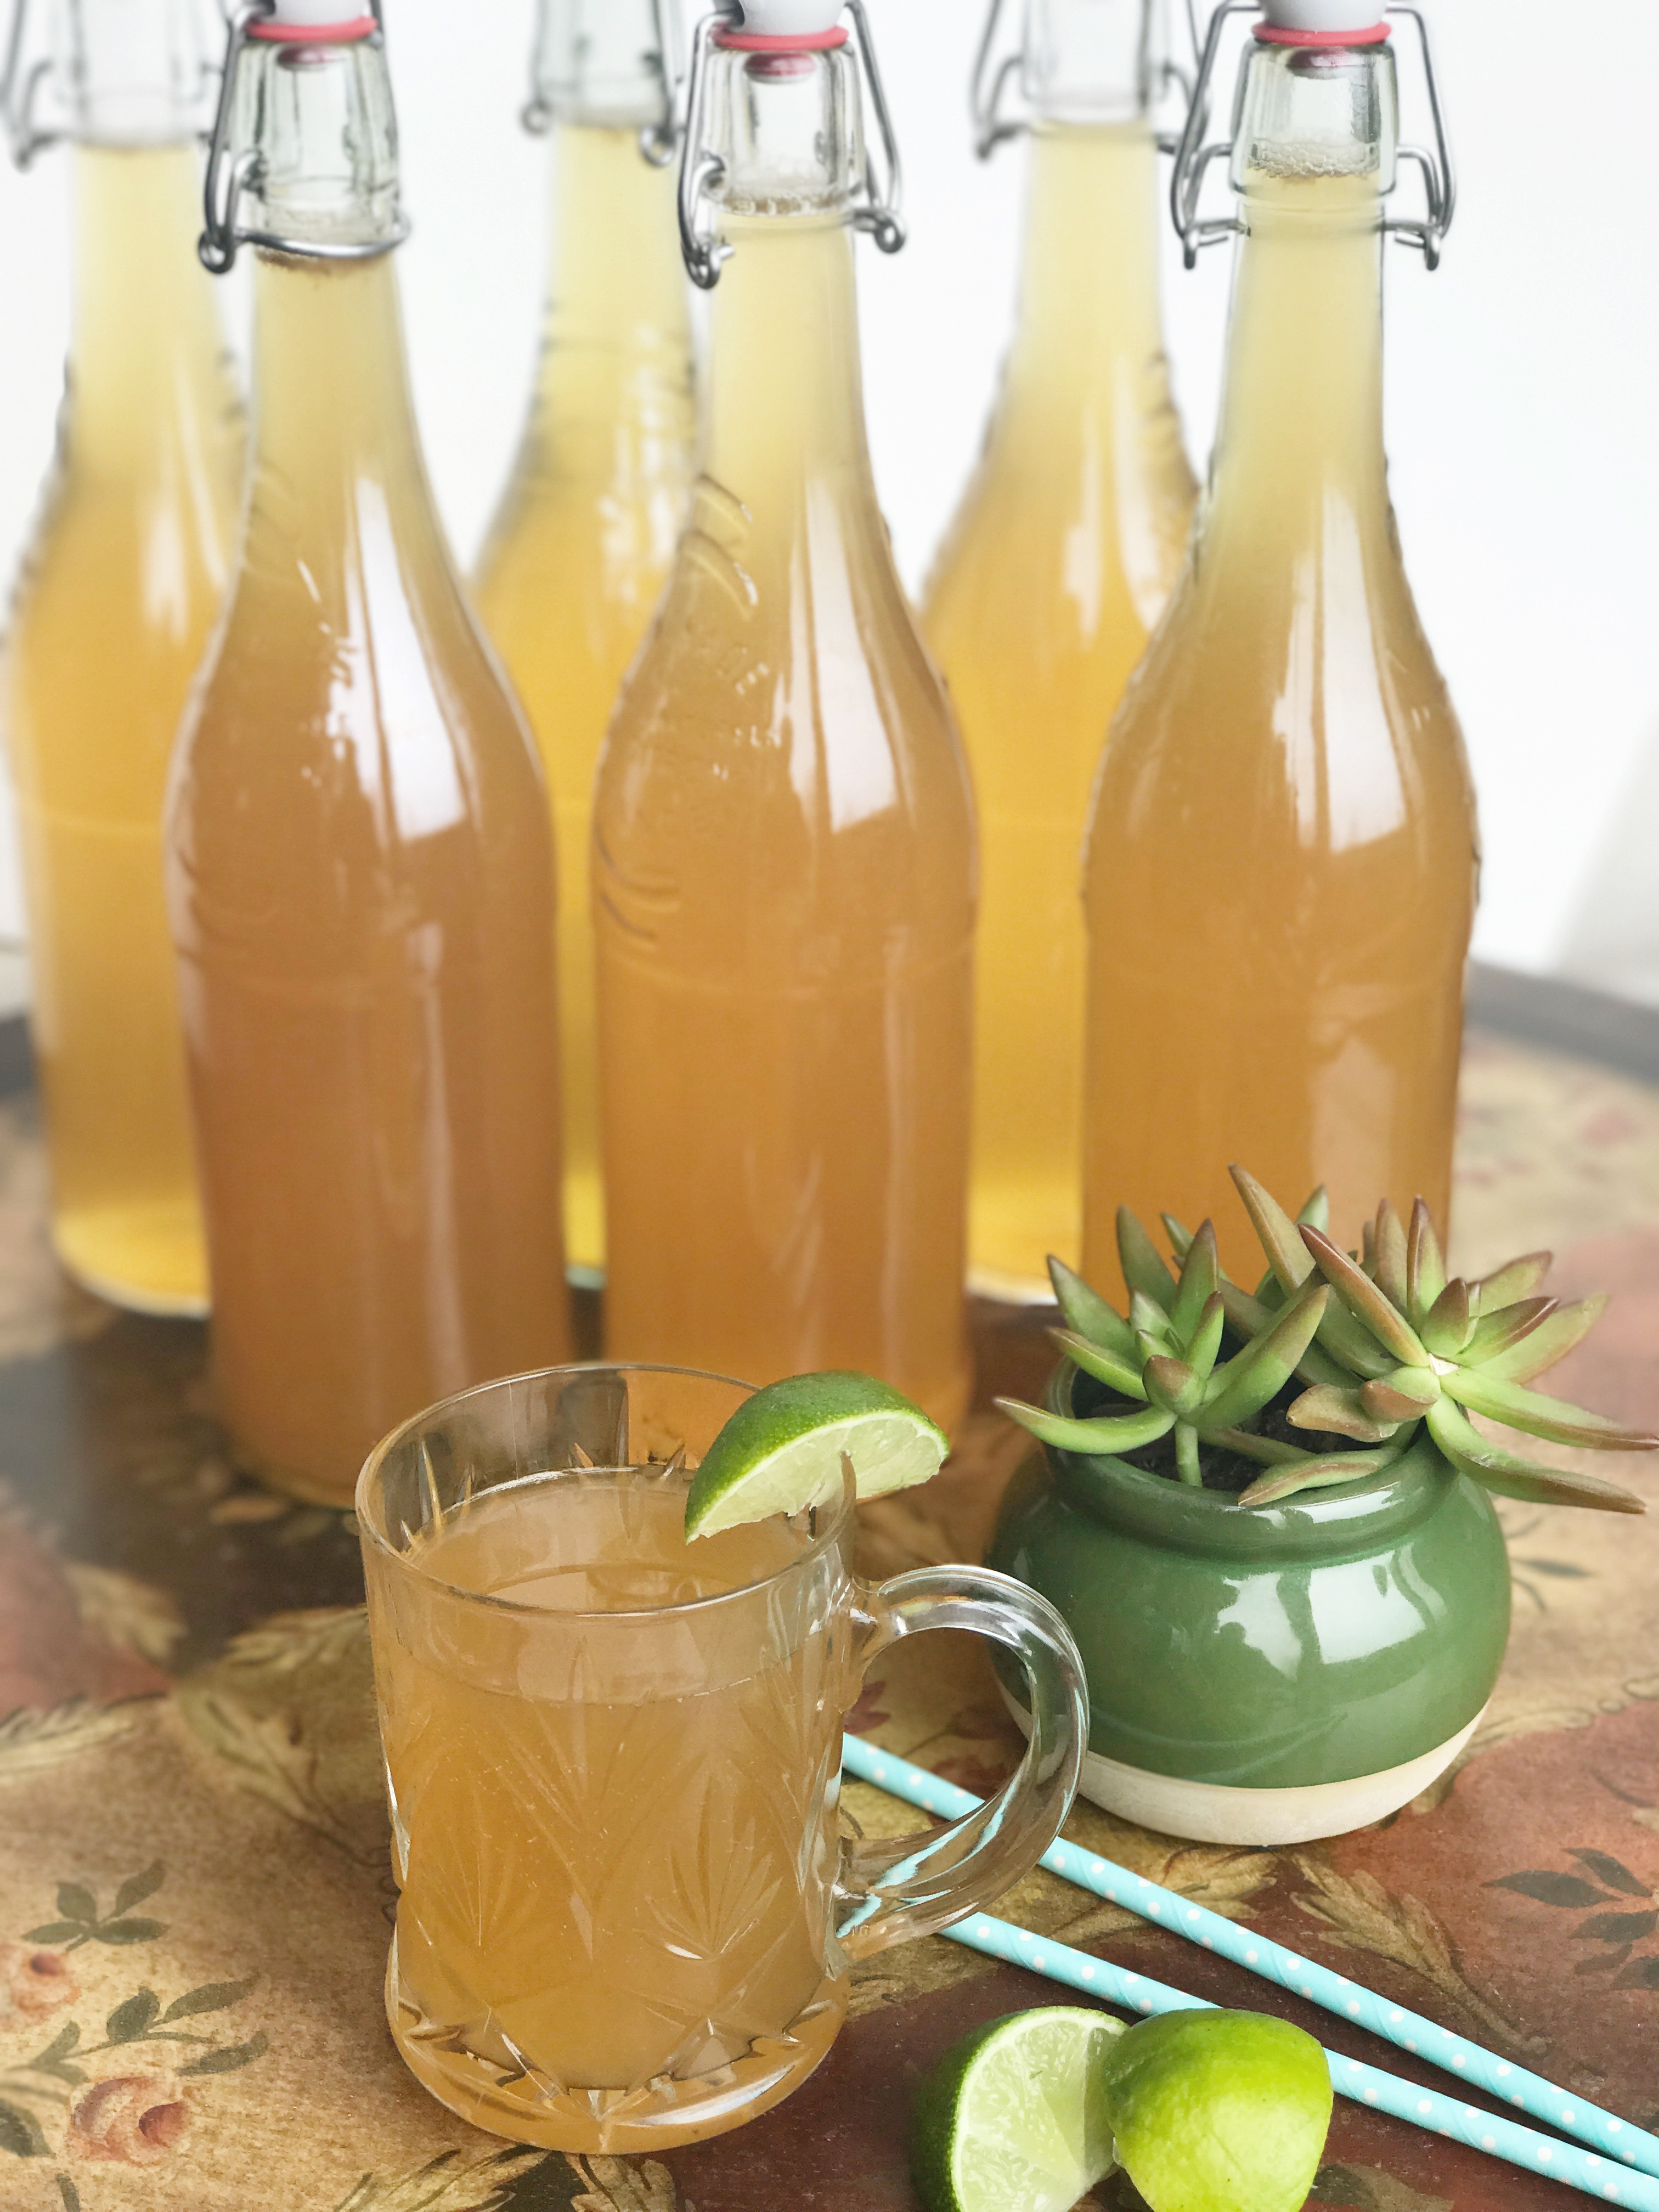 how to make kombucha from scratch